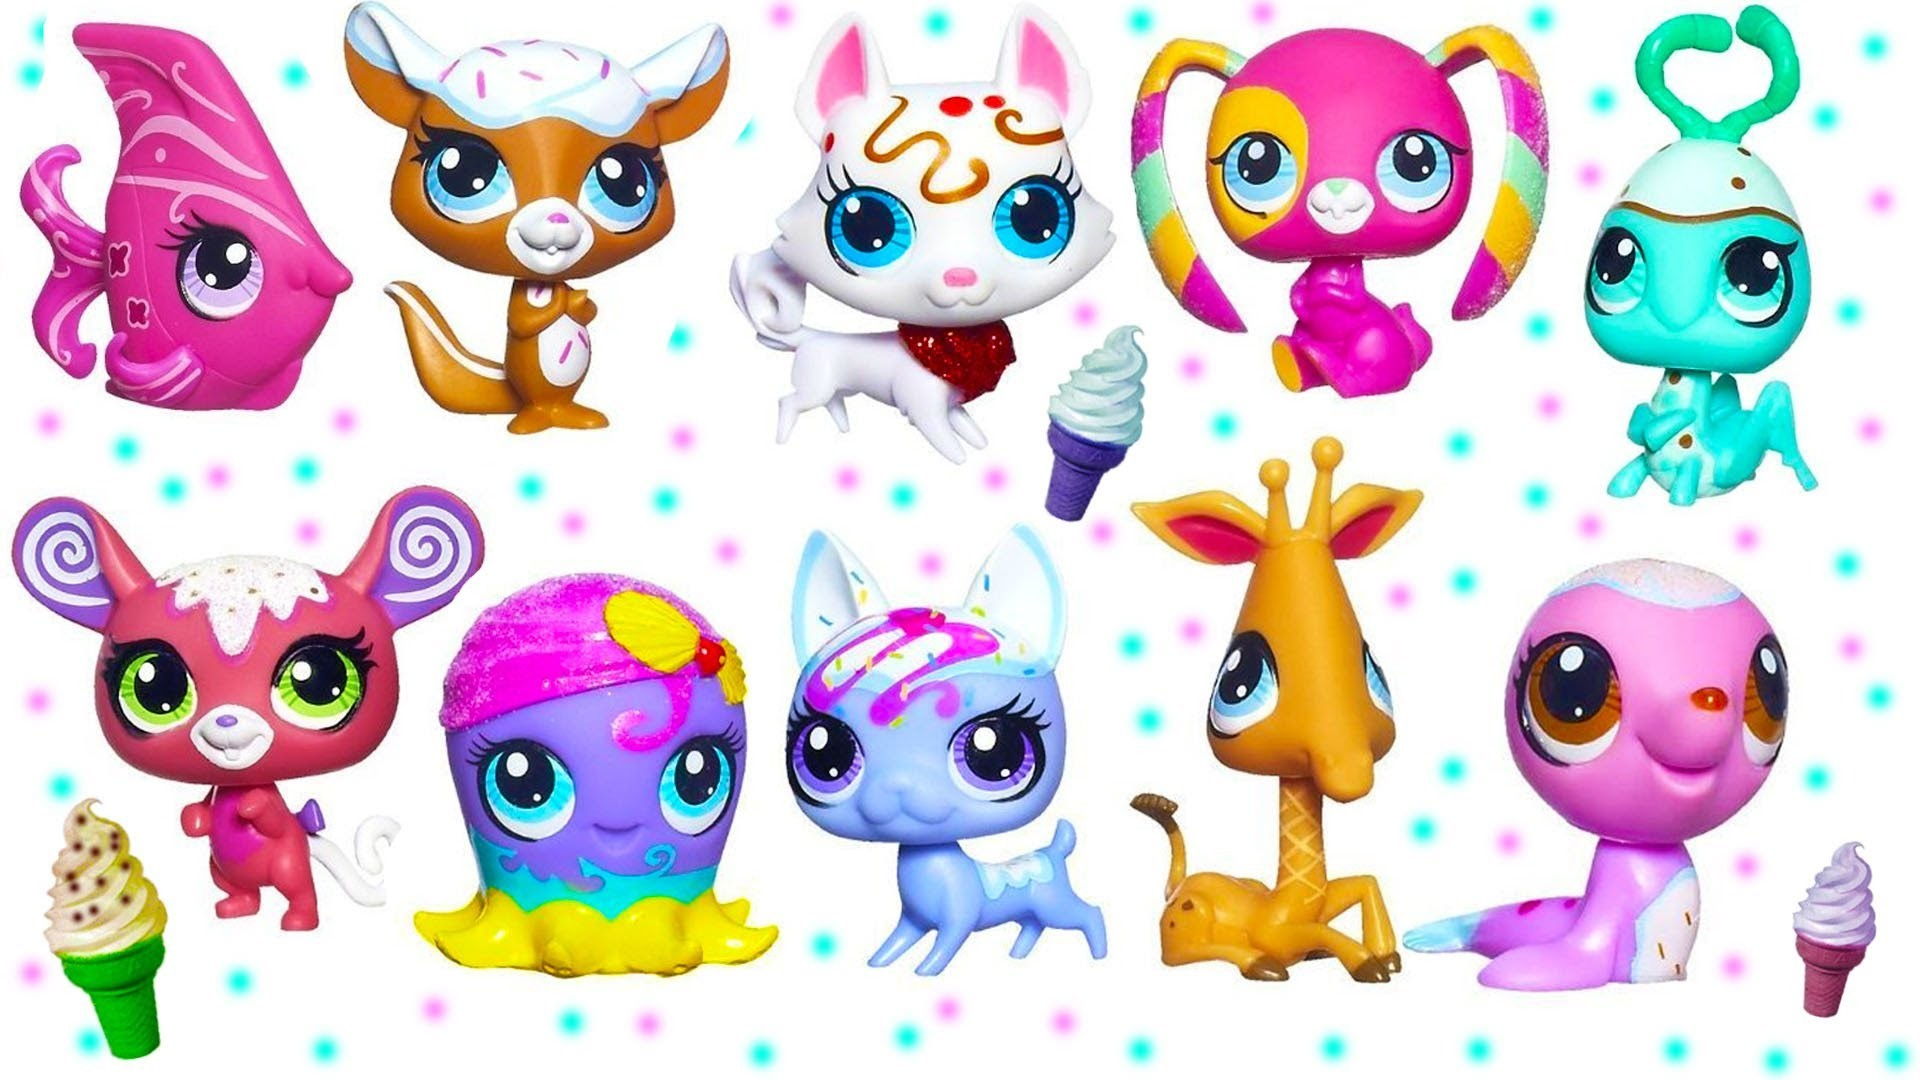 Lps wallpapers 67 images 1920x1080 littlest pet shop sundae sparkle ice cream sprinkle glitter pets toy review opening youtube voltagebd Choice Image